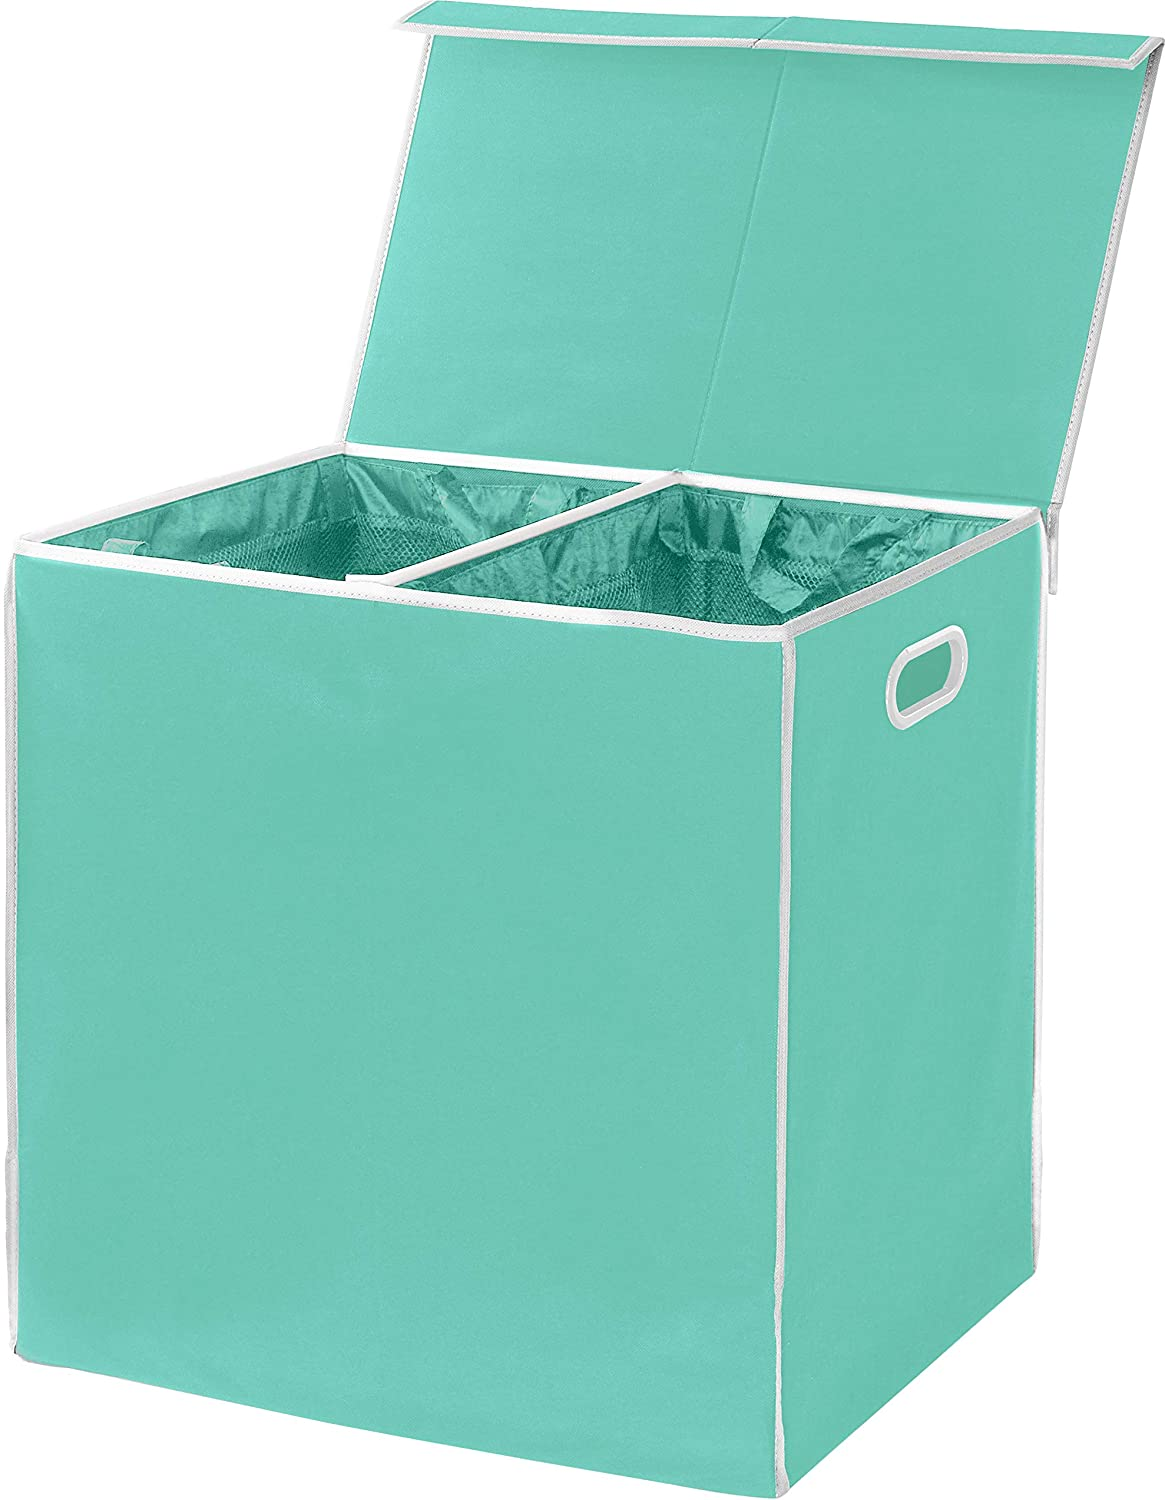 Simplehouseware Double Laundry Hamper with Lid and Removable Laundry Bags, Turquoise